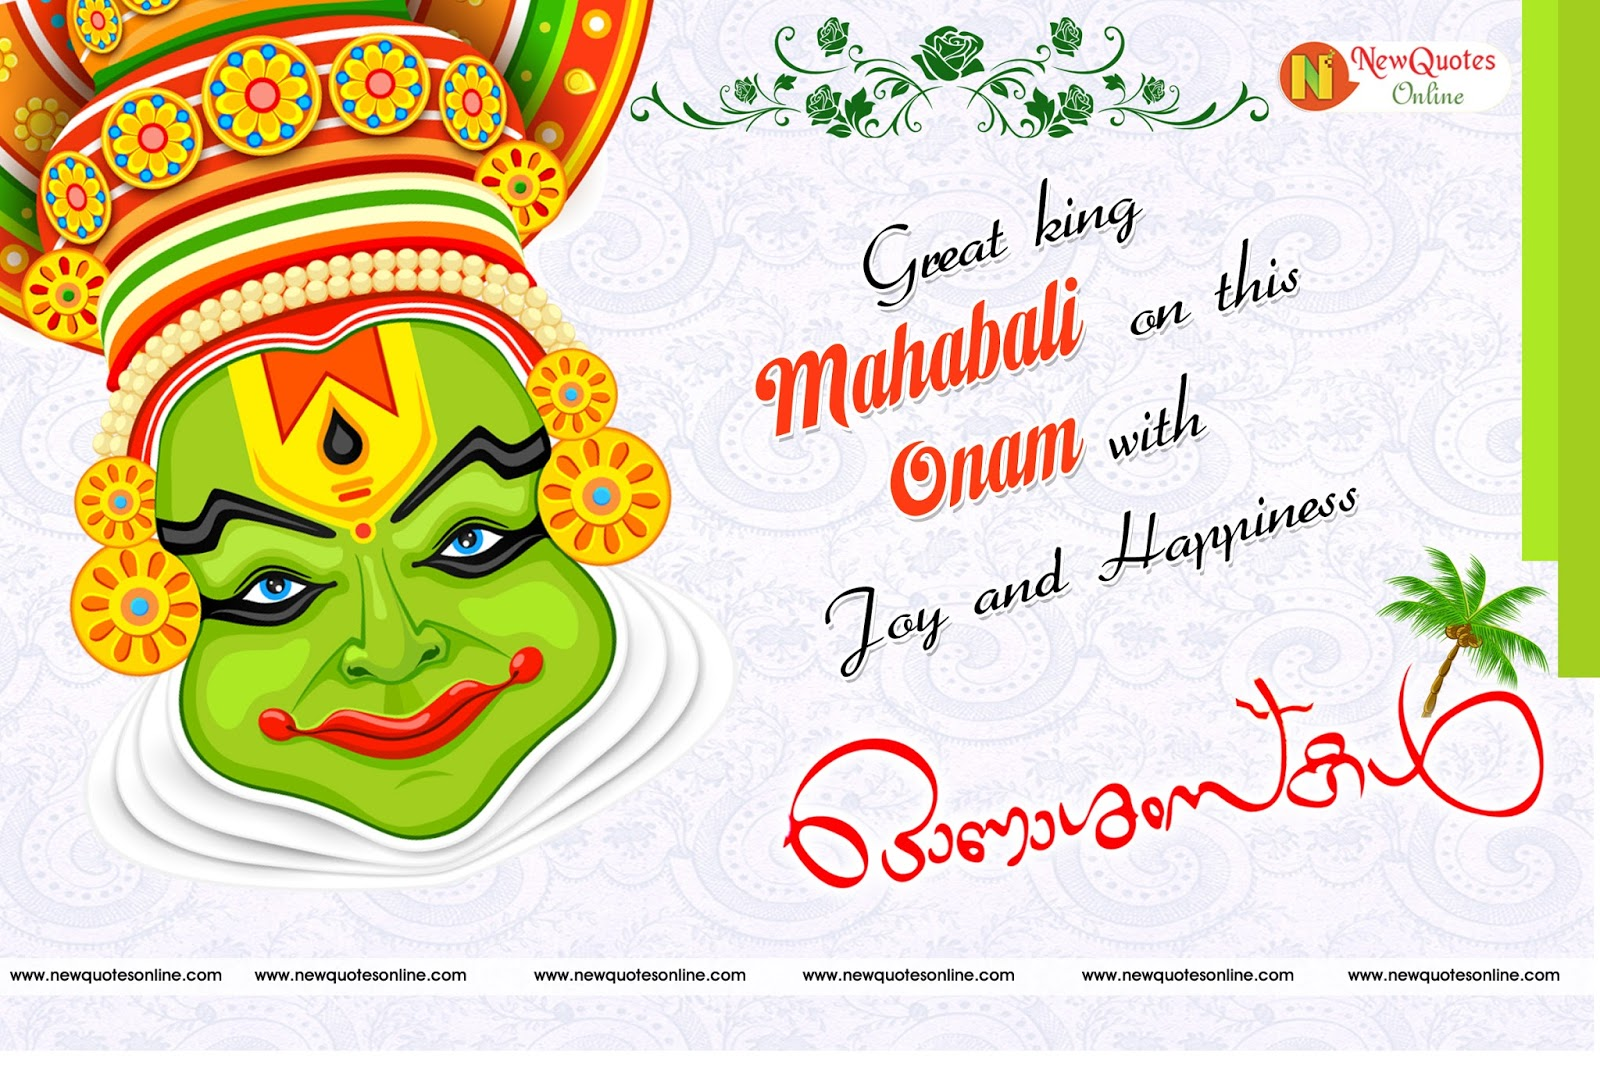 Download happy onam wishes and greetings in malayalam new quotes happy onam whatsapp dp facebook profile pictures onashamsakal kristyandbryce Image collections